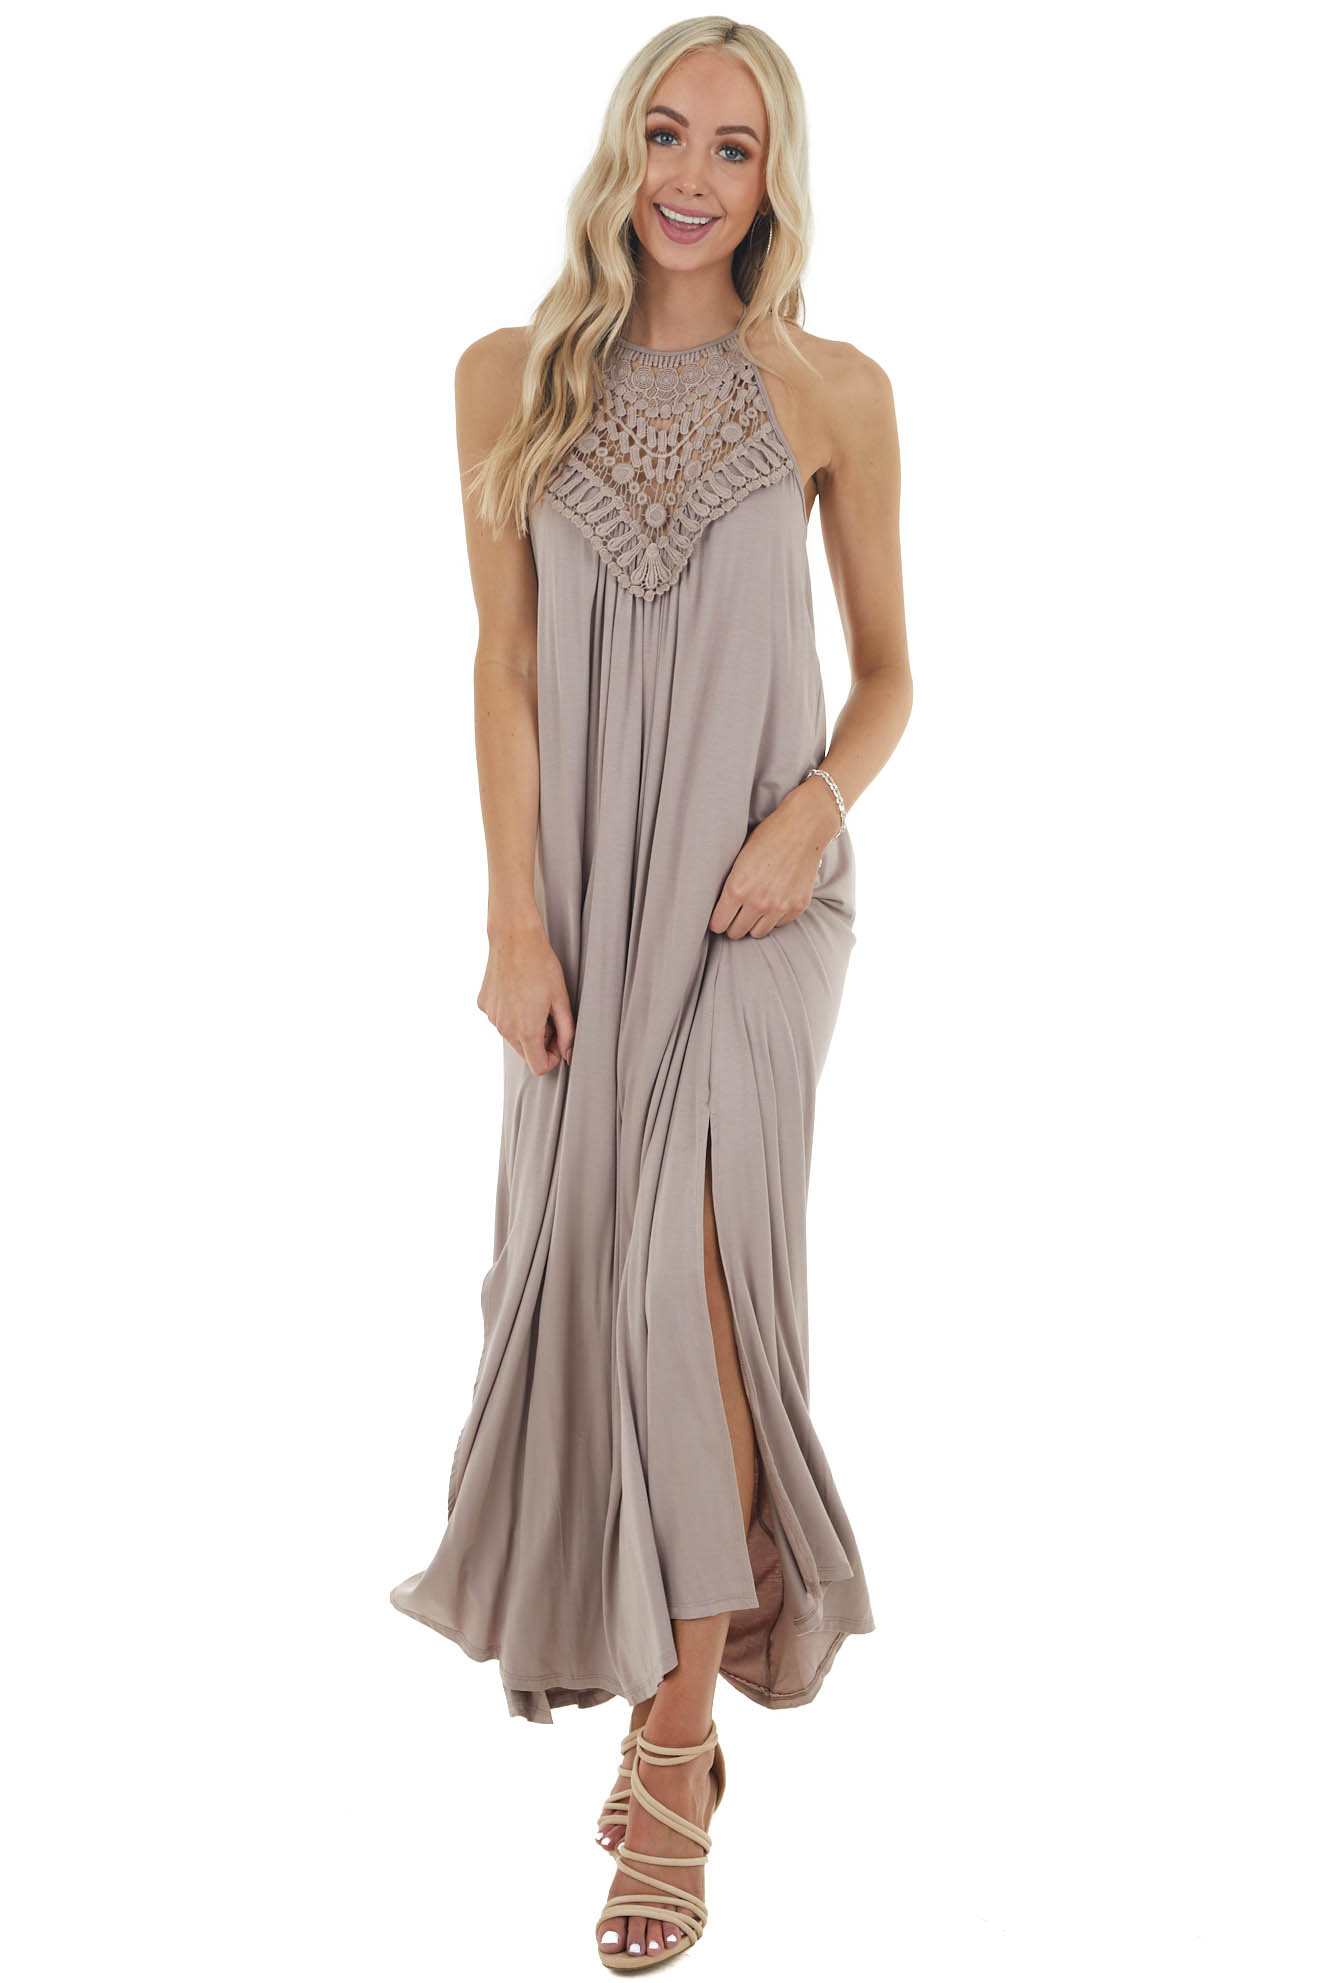 Mocha Sleeveless Maxi Dress with Front Lace Detail